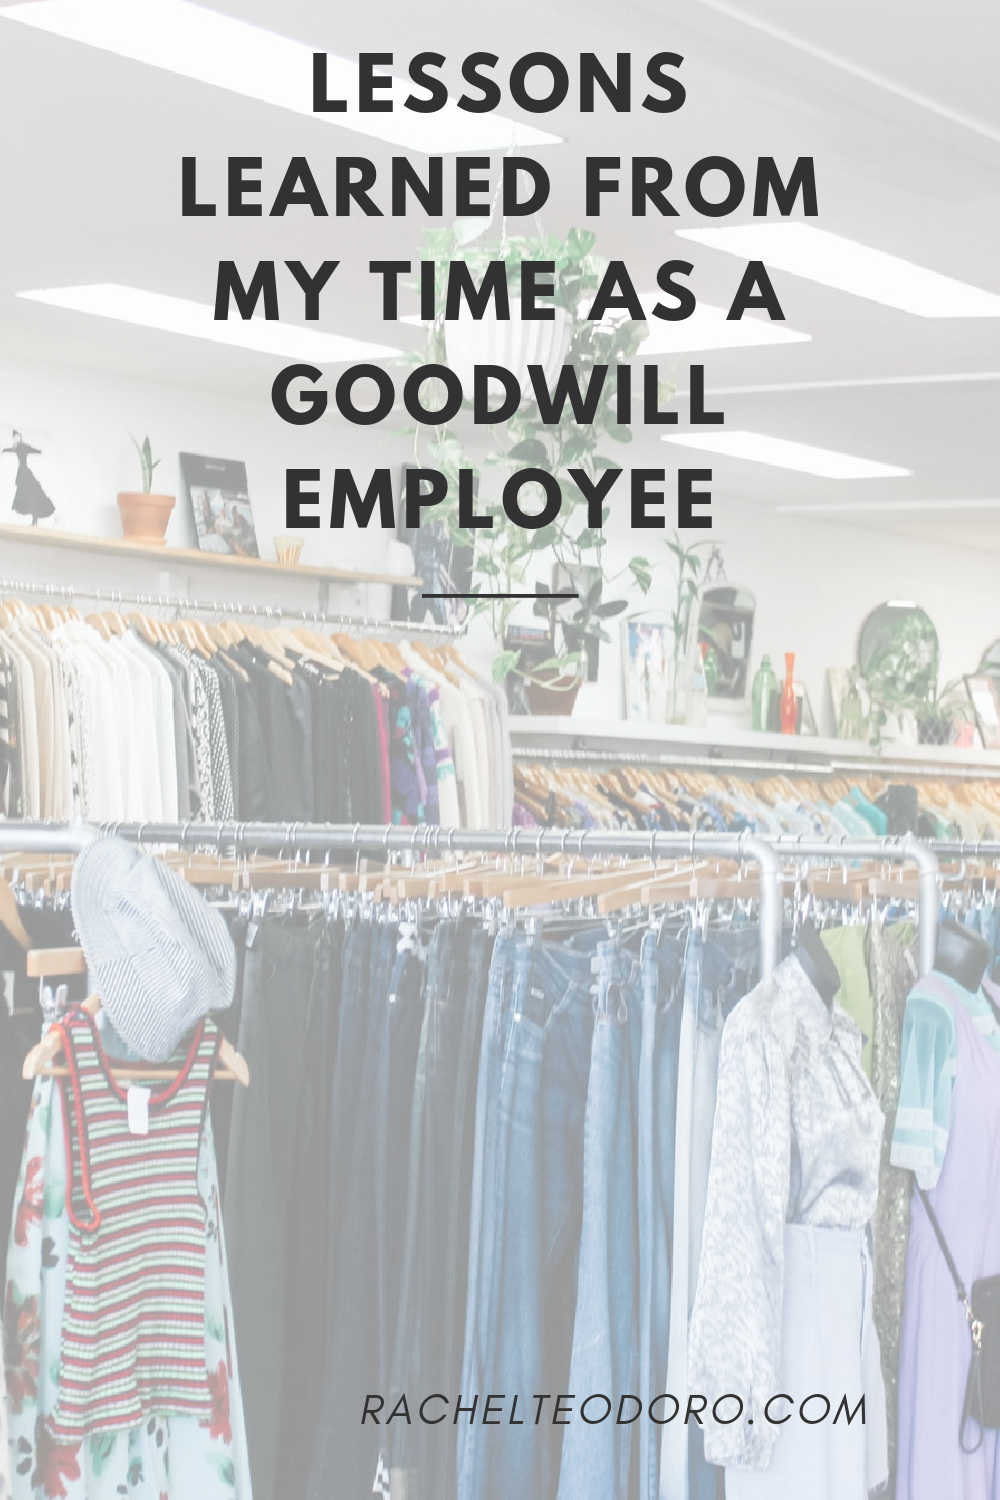 lessons learned while working at goodwill as an employee